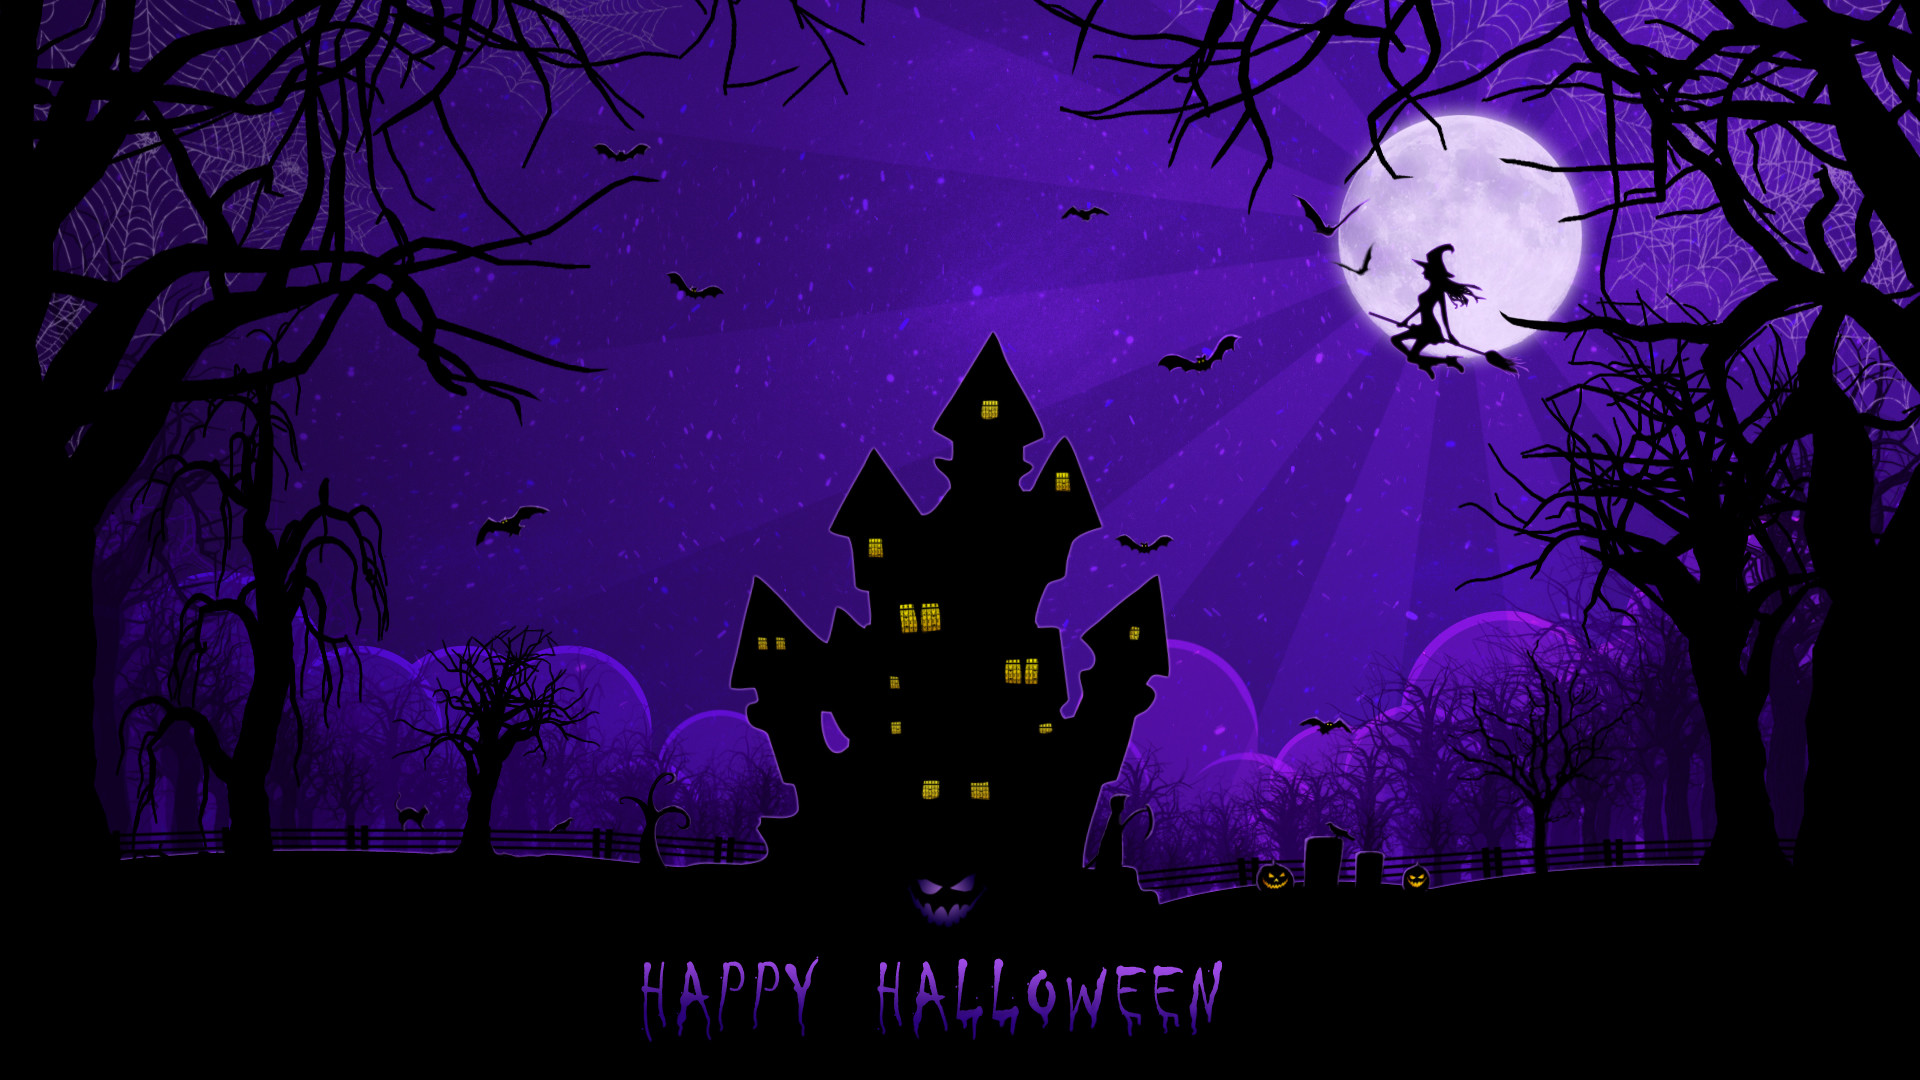 … Download Halloween Wallpapers In 2K and Full HD